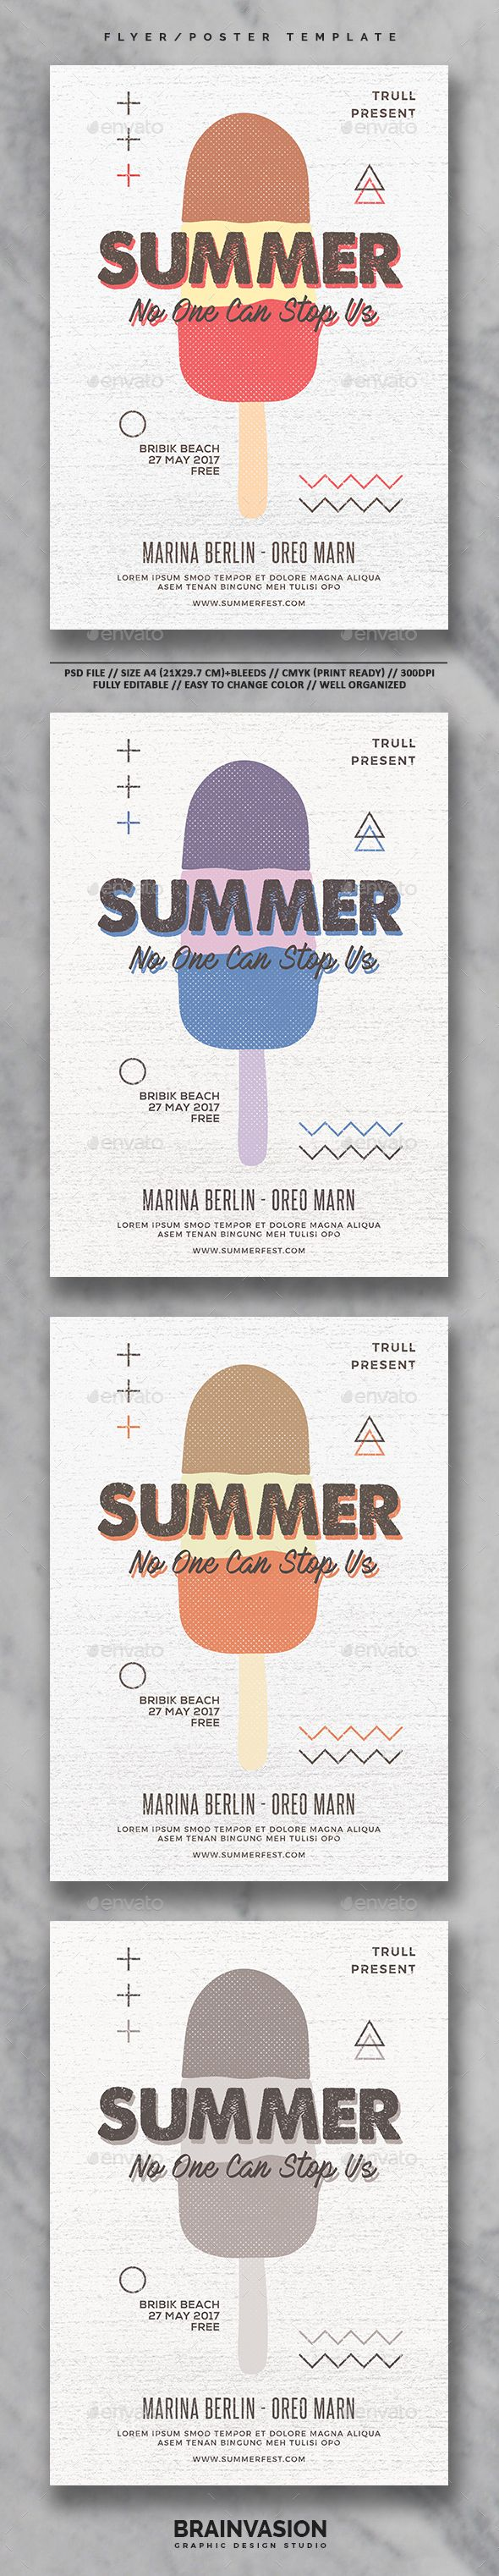 Poster design in photoshop 7 - Summer Flyer Poster Template Vol 01 Photoshop Psd Best Seller 8 3